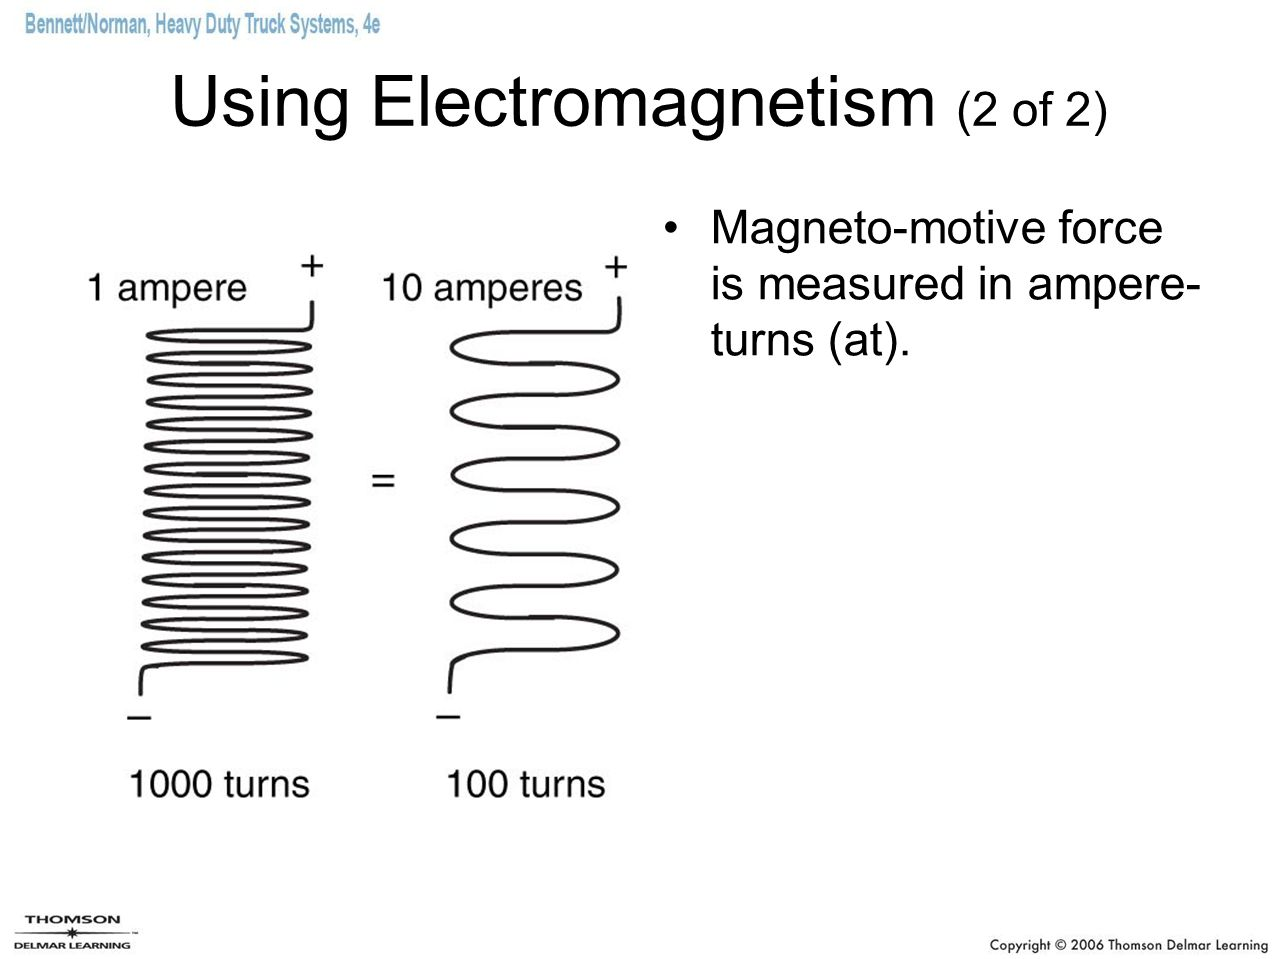 Using Electromagnetism (2 of 2)